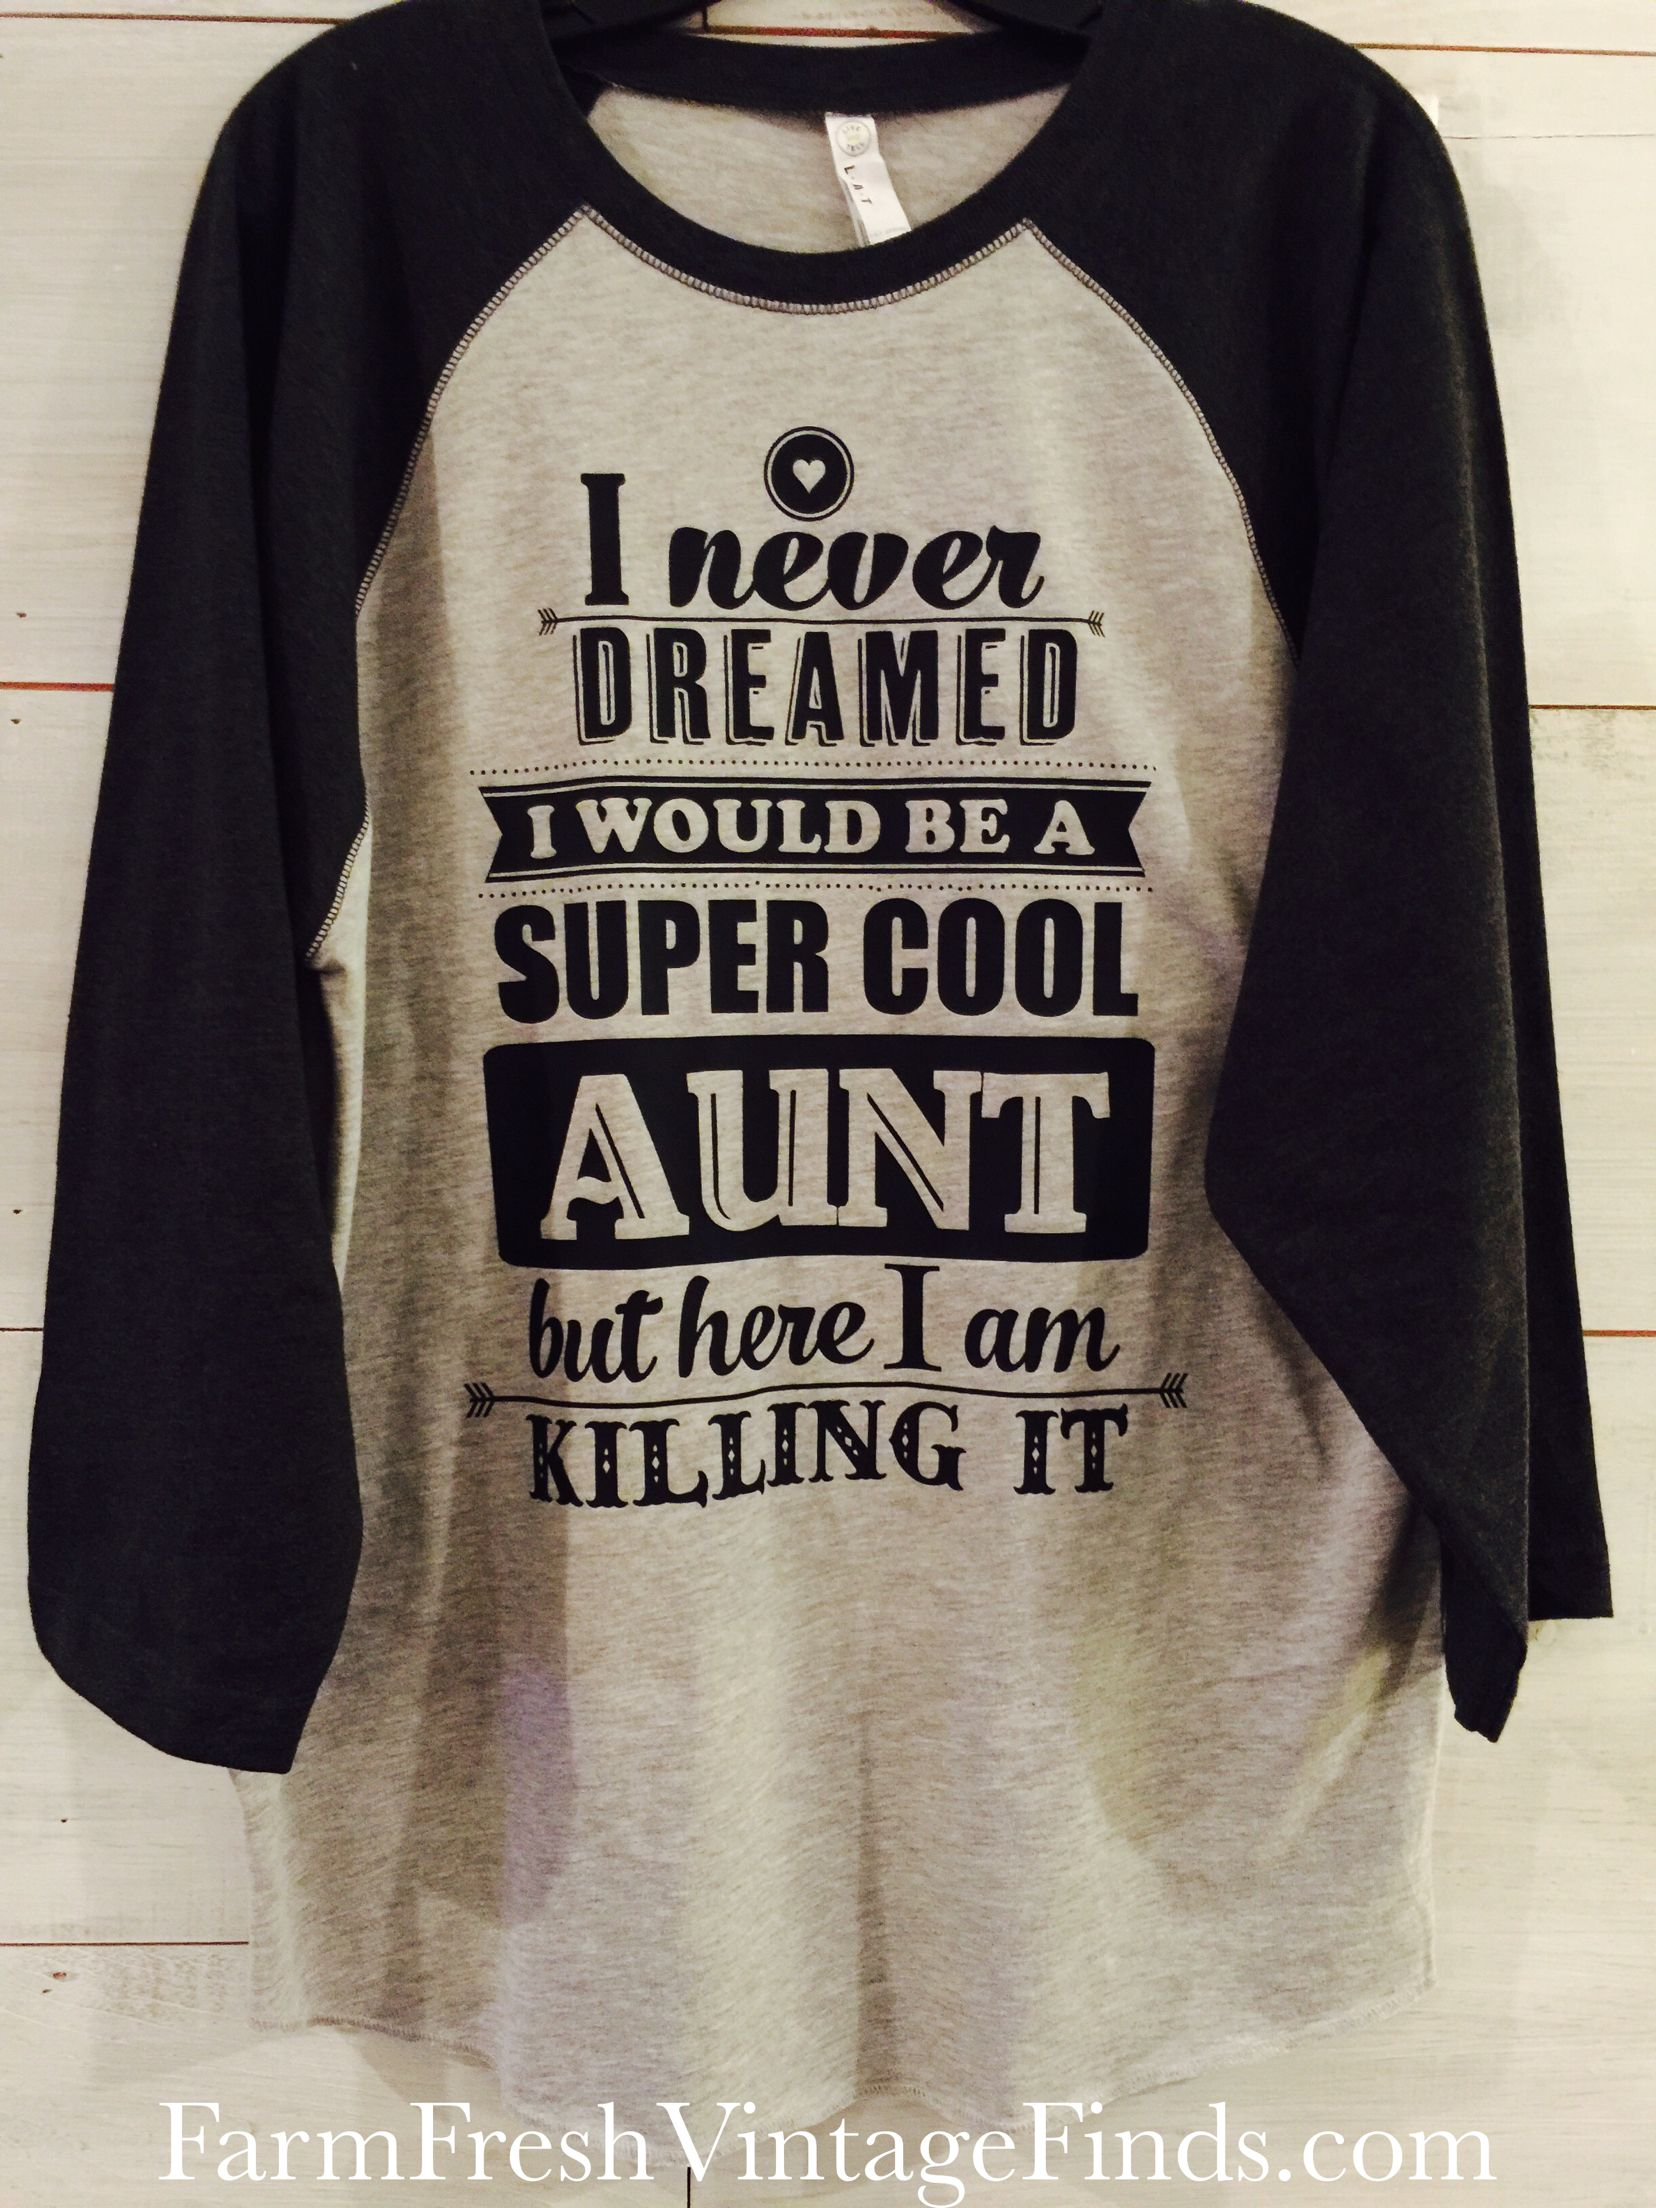 Why does my aunt dream